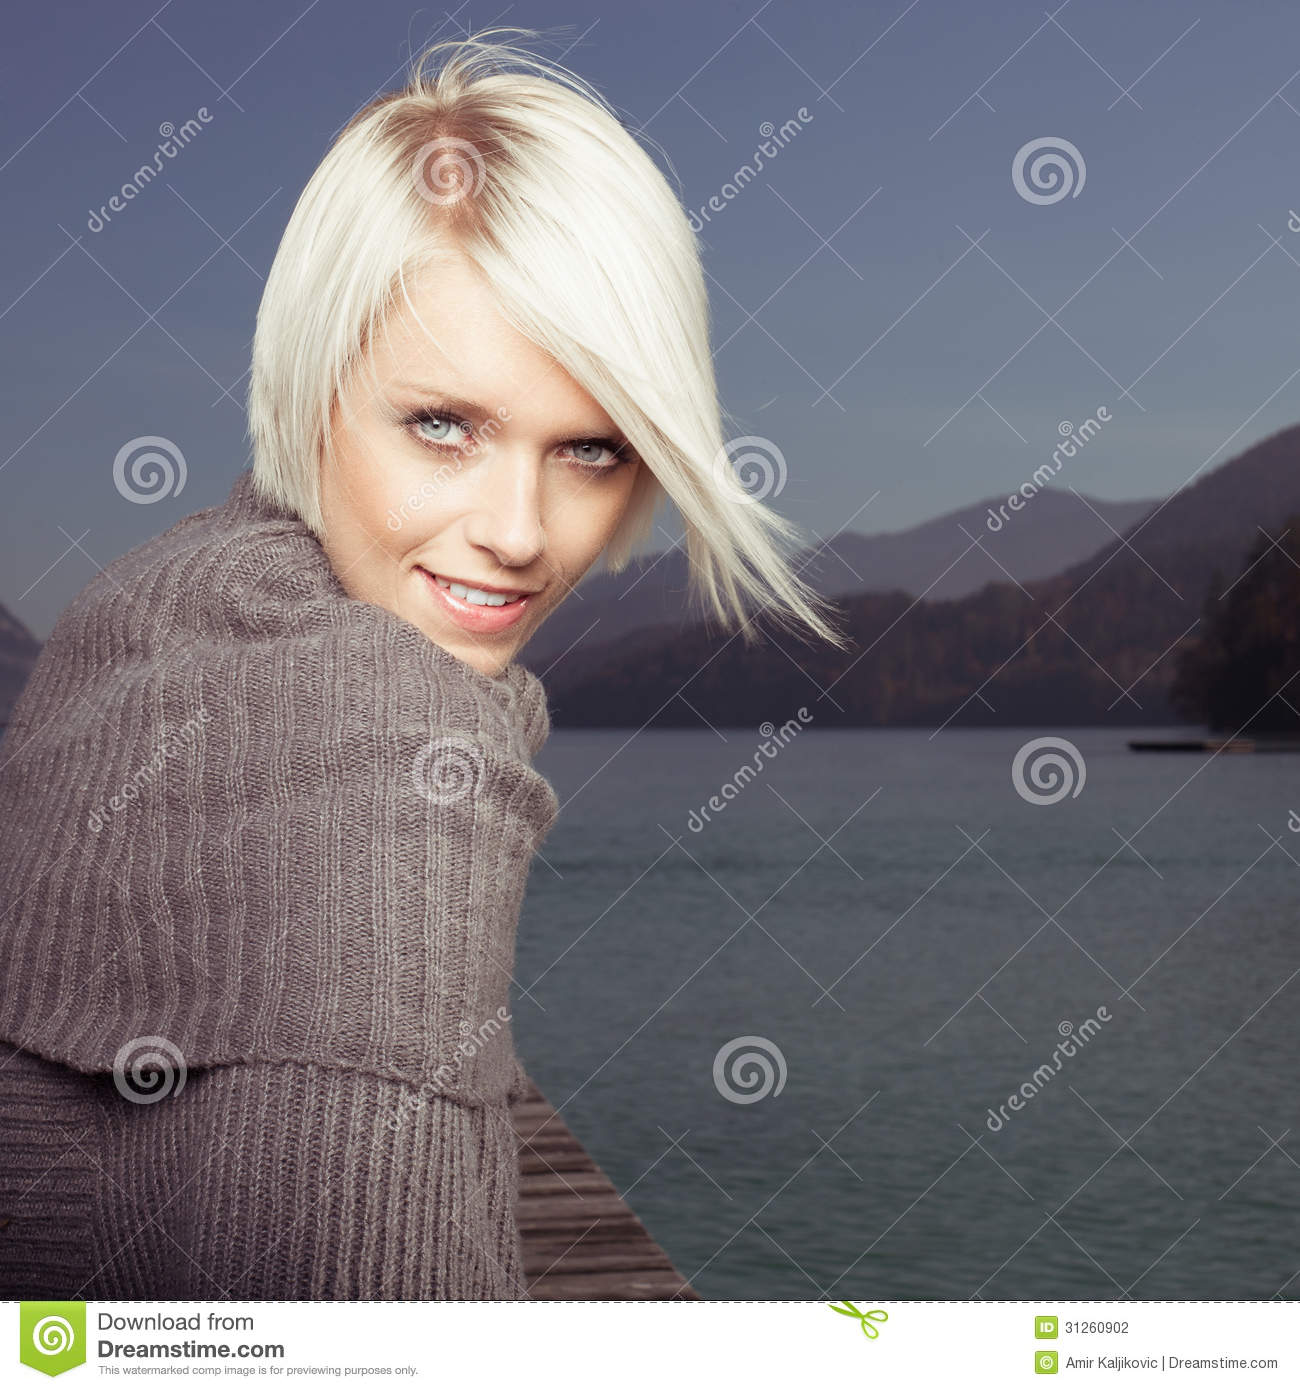 Beauty Portrait Of Beautiful Blond Woman Stock Photography ...